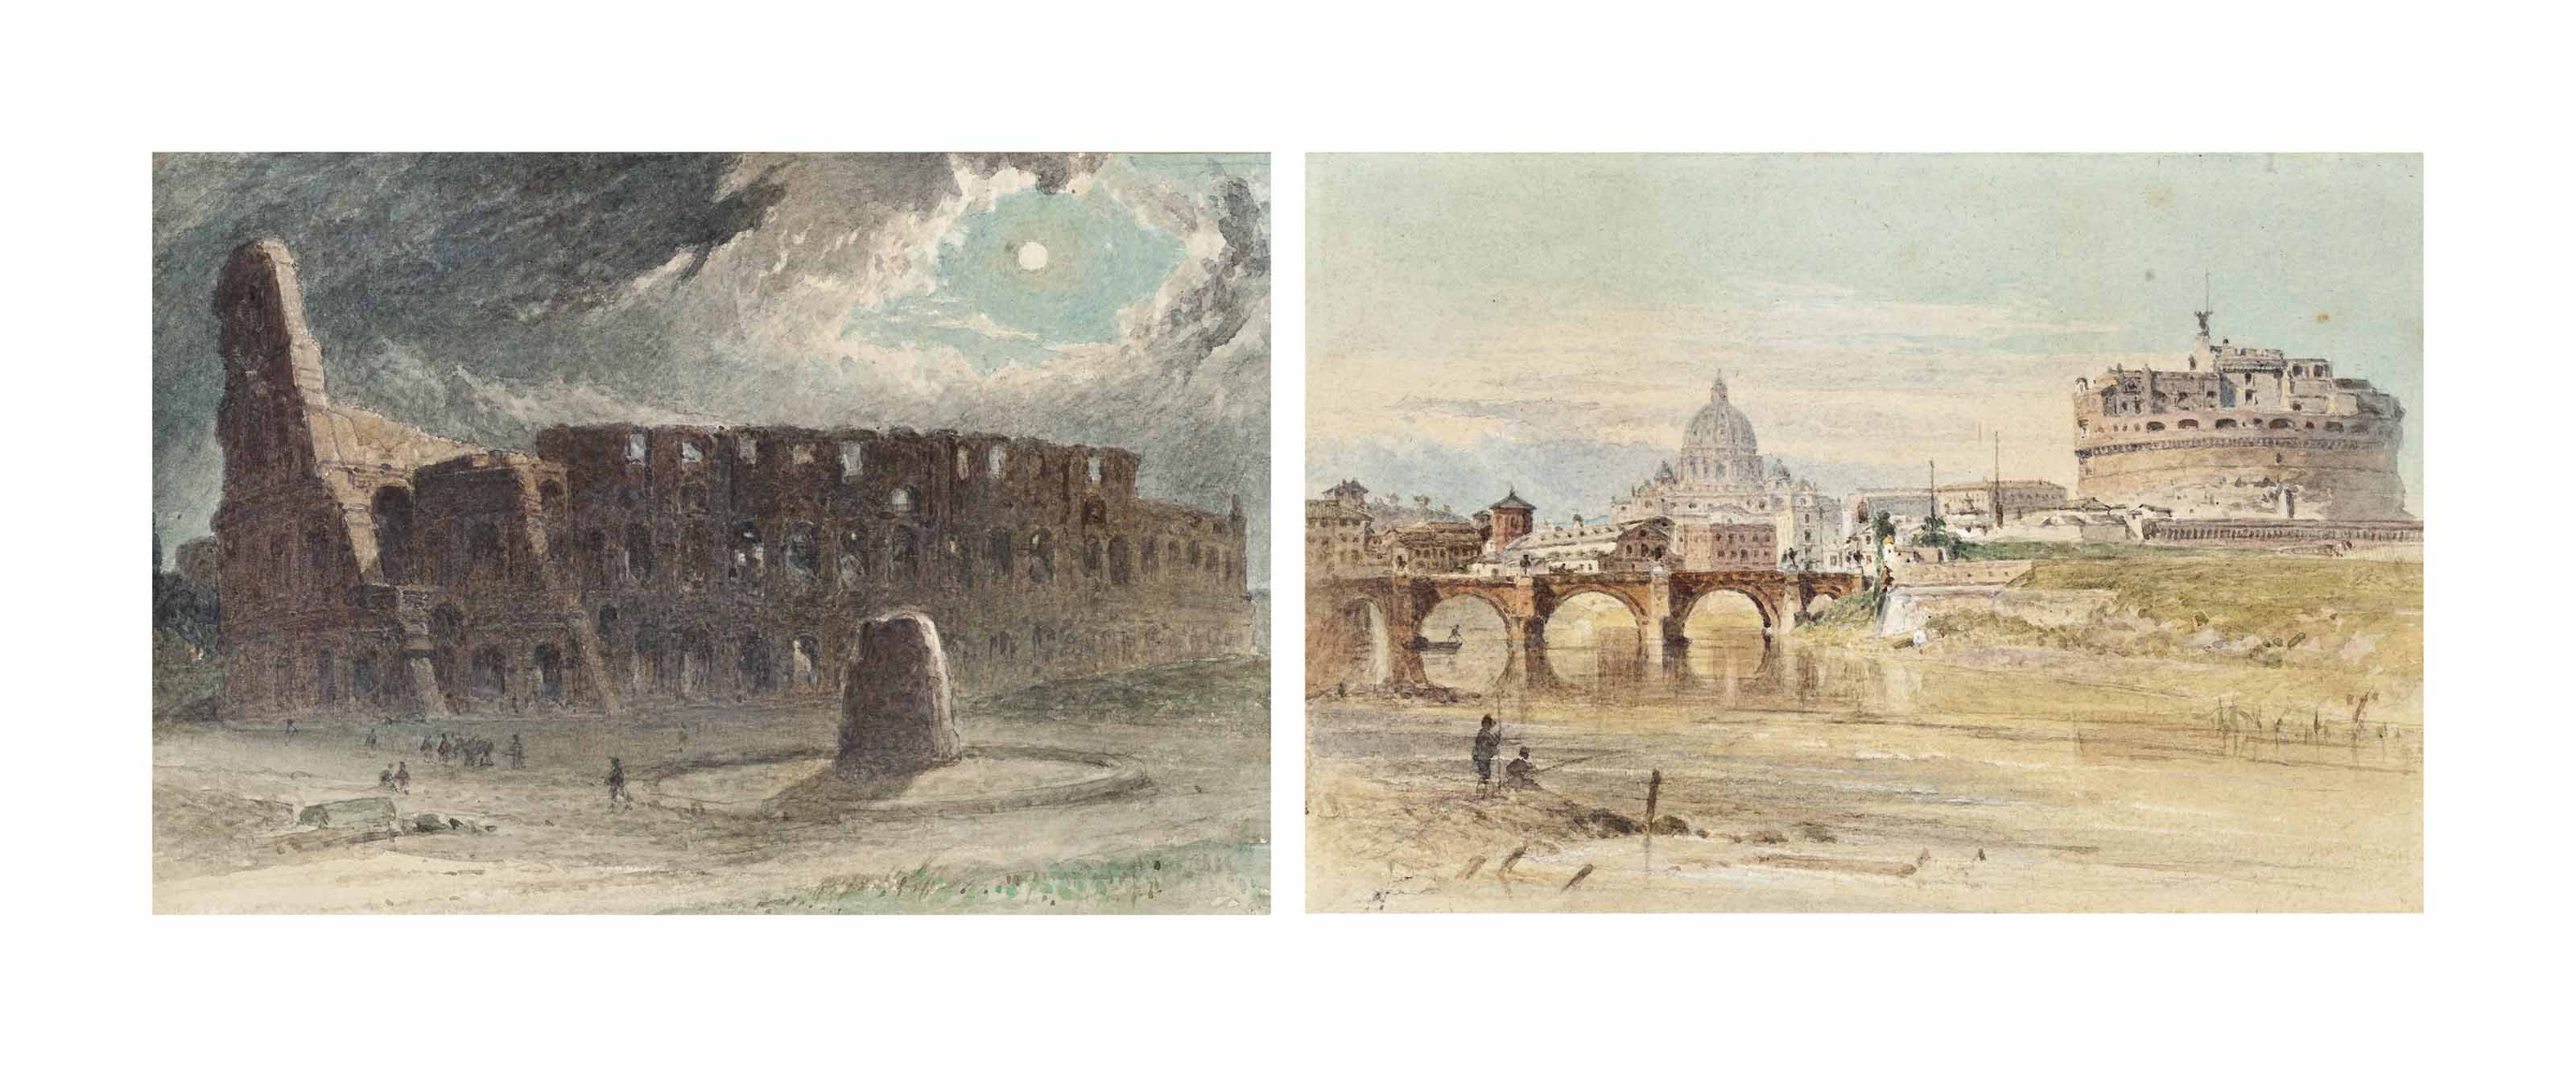 The Colosseum, Rome; and Tiber, a view of St Peter's Cathedral